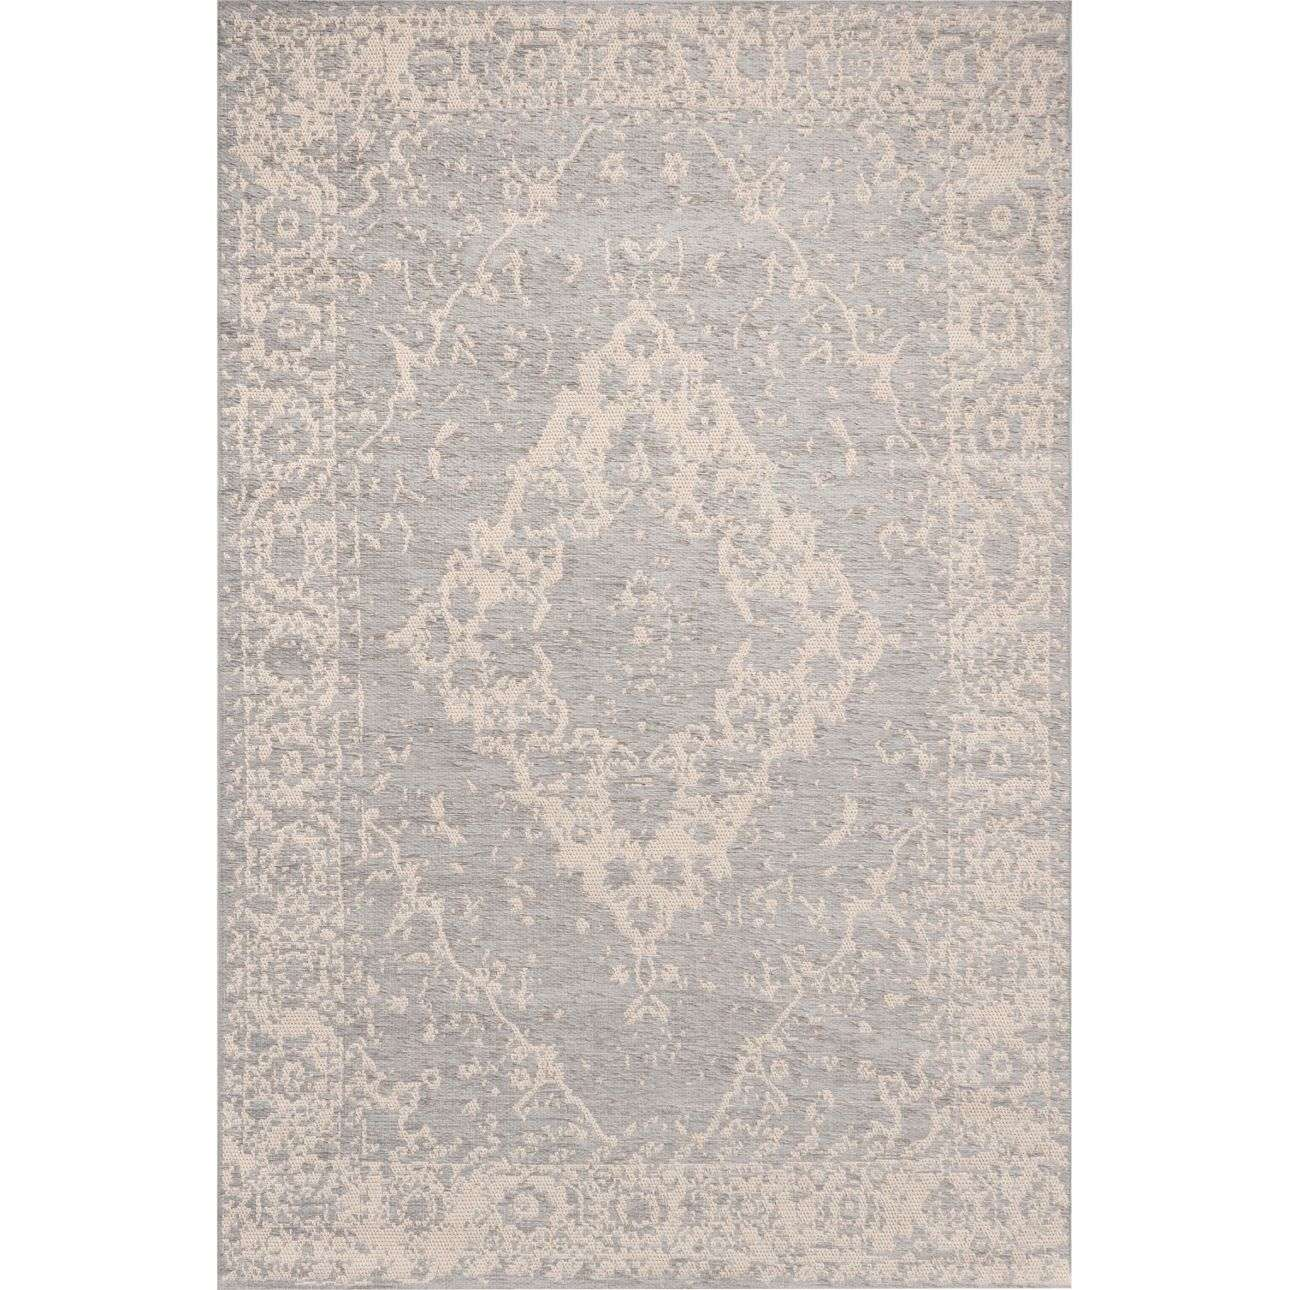 Breeze Serenity Blue/Beige Area Rug 155x230cm